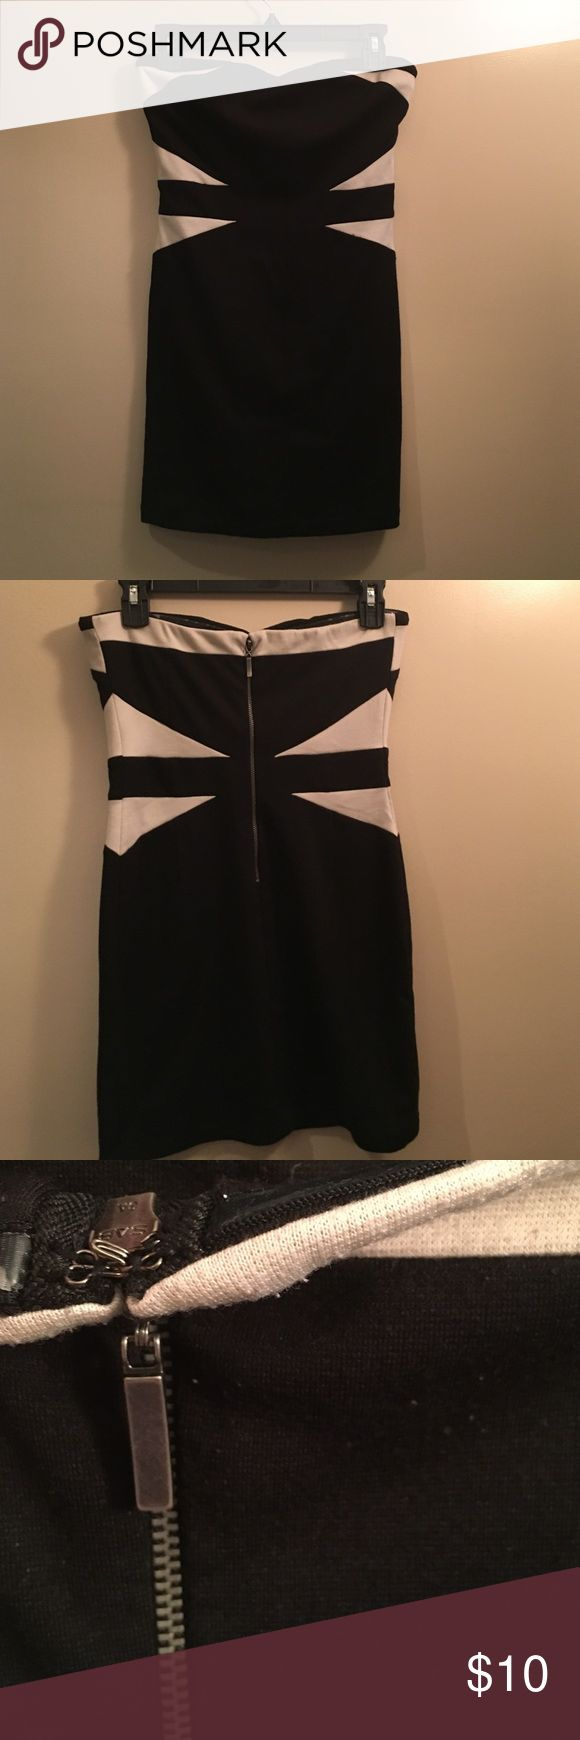 Black and white bodycon dress Black and white bodycon dress. Sweetheart style top. Good condition, some pilling, but that is an easy fix. Zipper and hook in back. Lining around top for extra support.  Forever 21, size medium Forever 21 Dresses Strapless